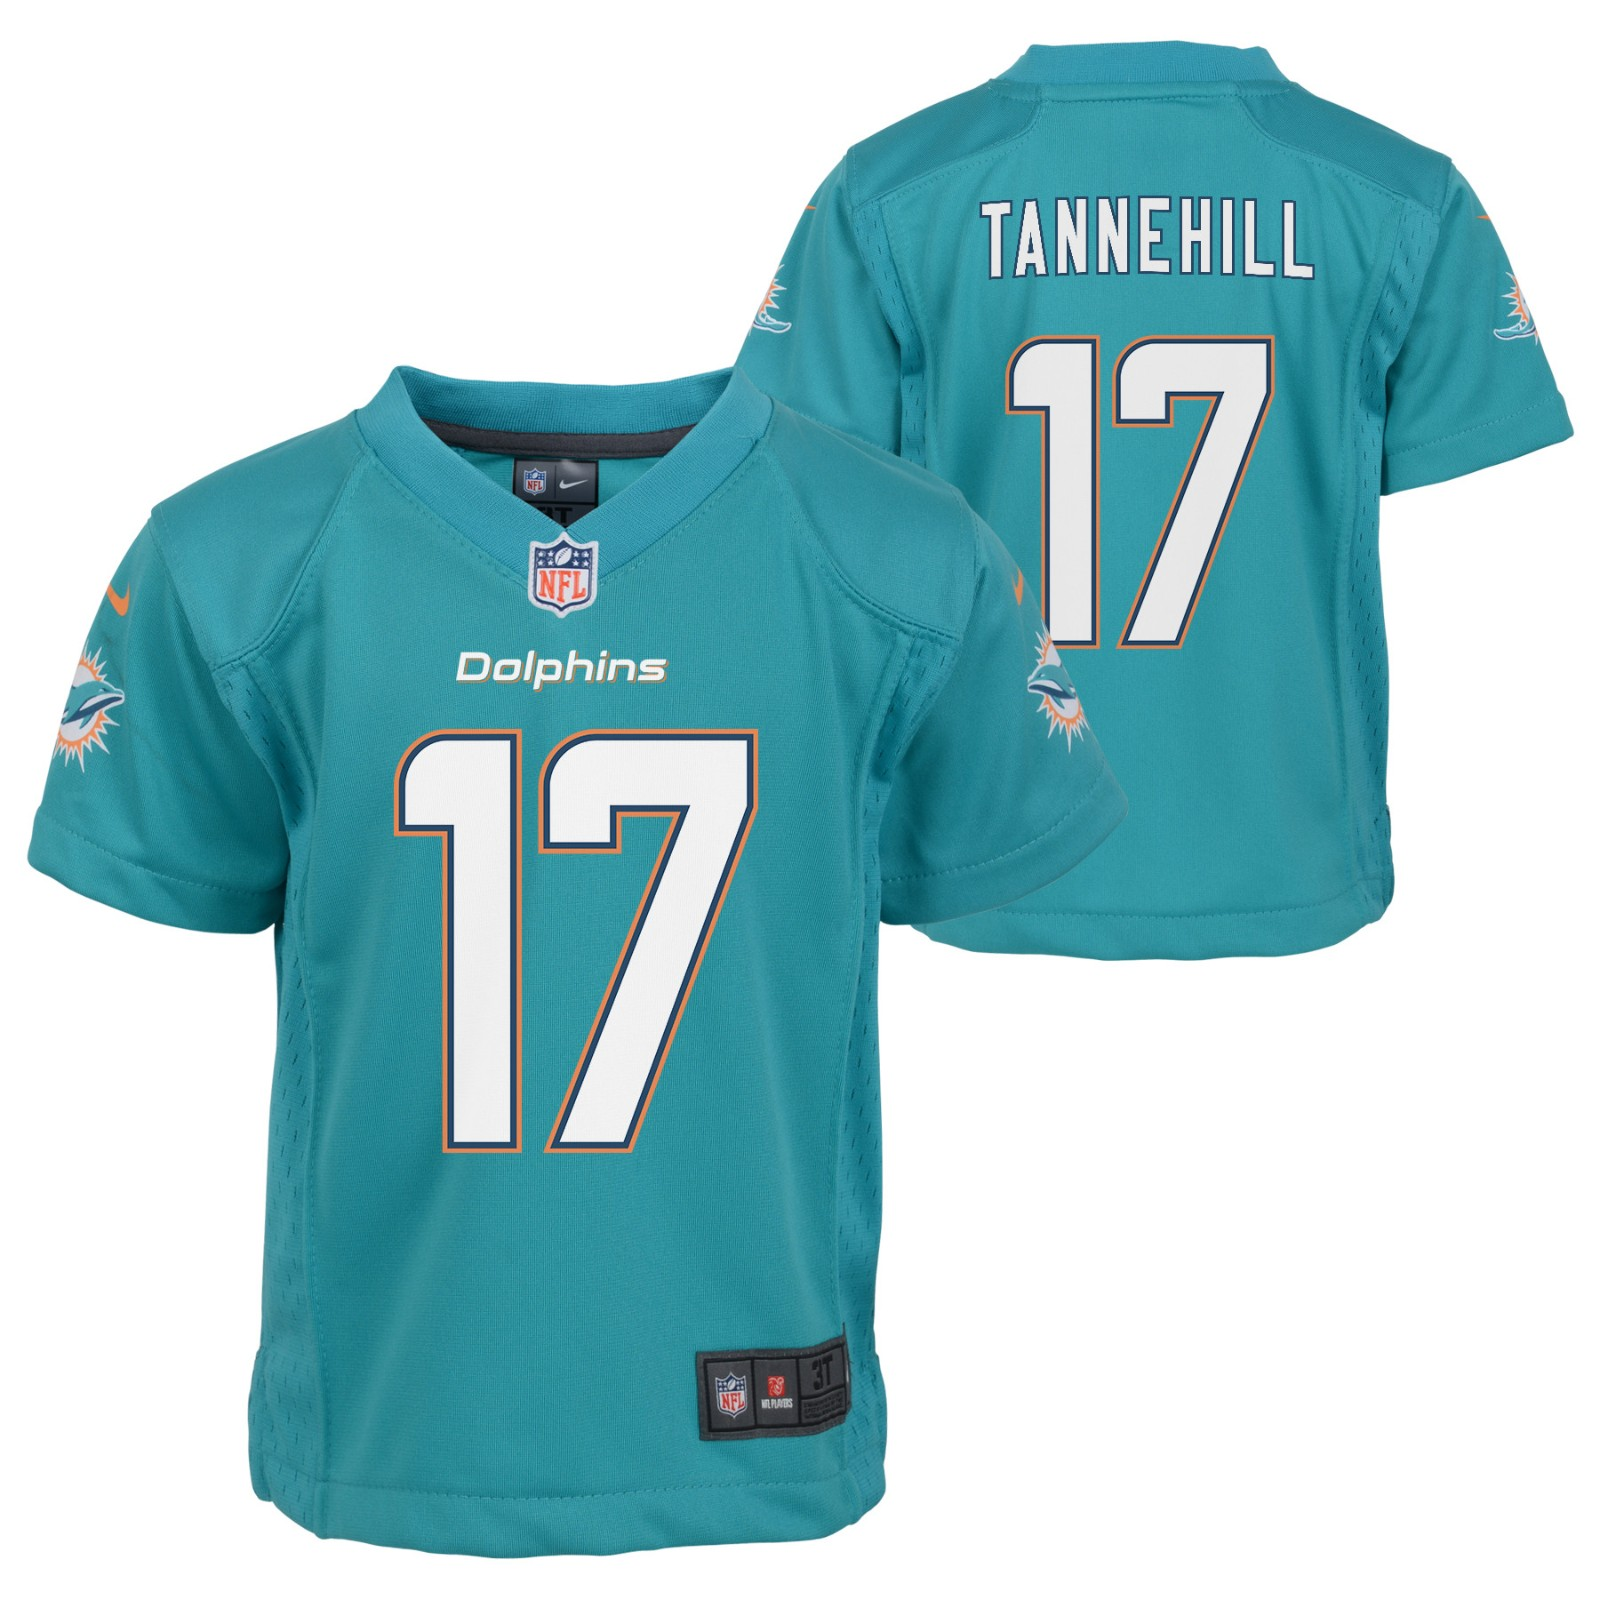 the latest 92a61 f1c22 Details about Ryan Tannehill Miami Dolphins NFL Nike Boys Teal Game Jersey